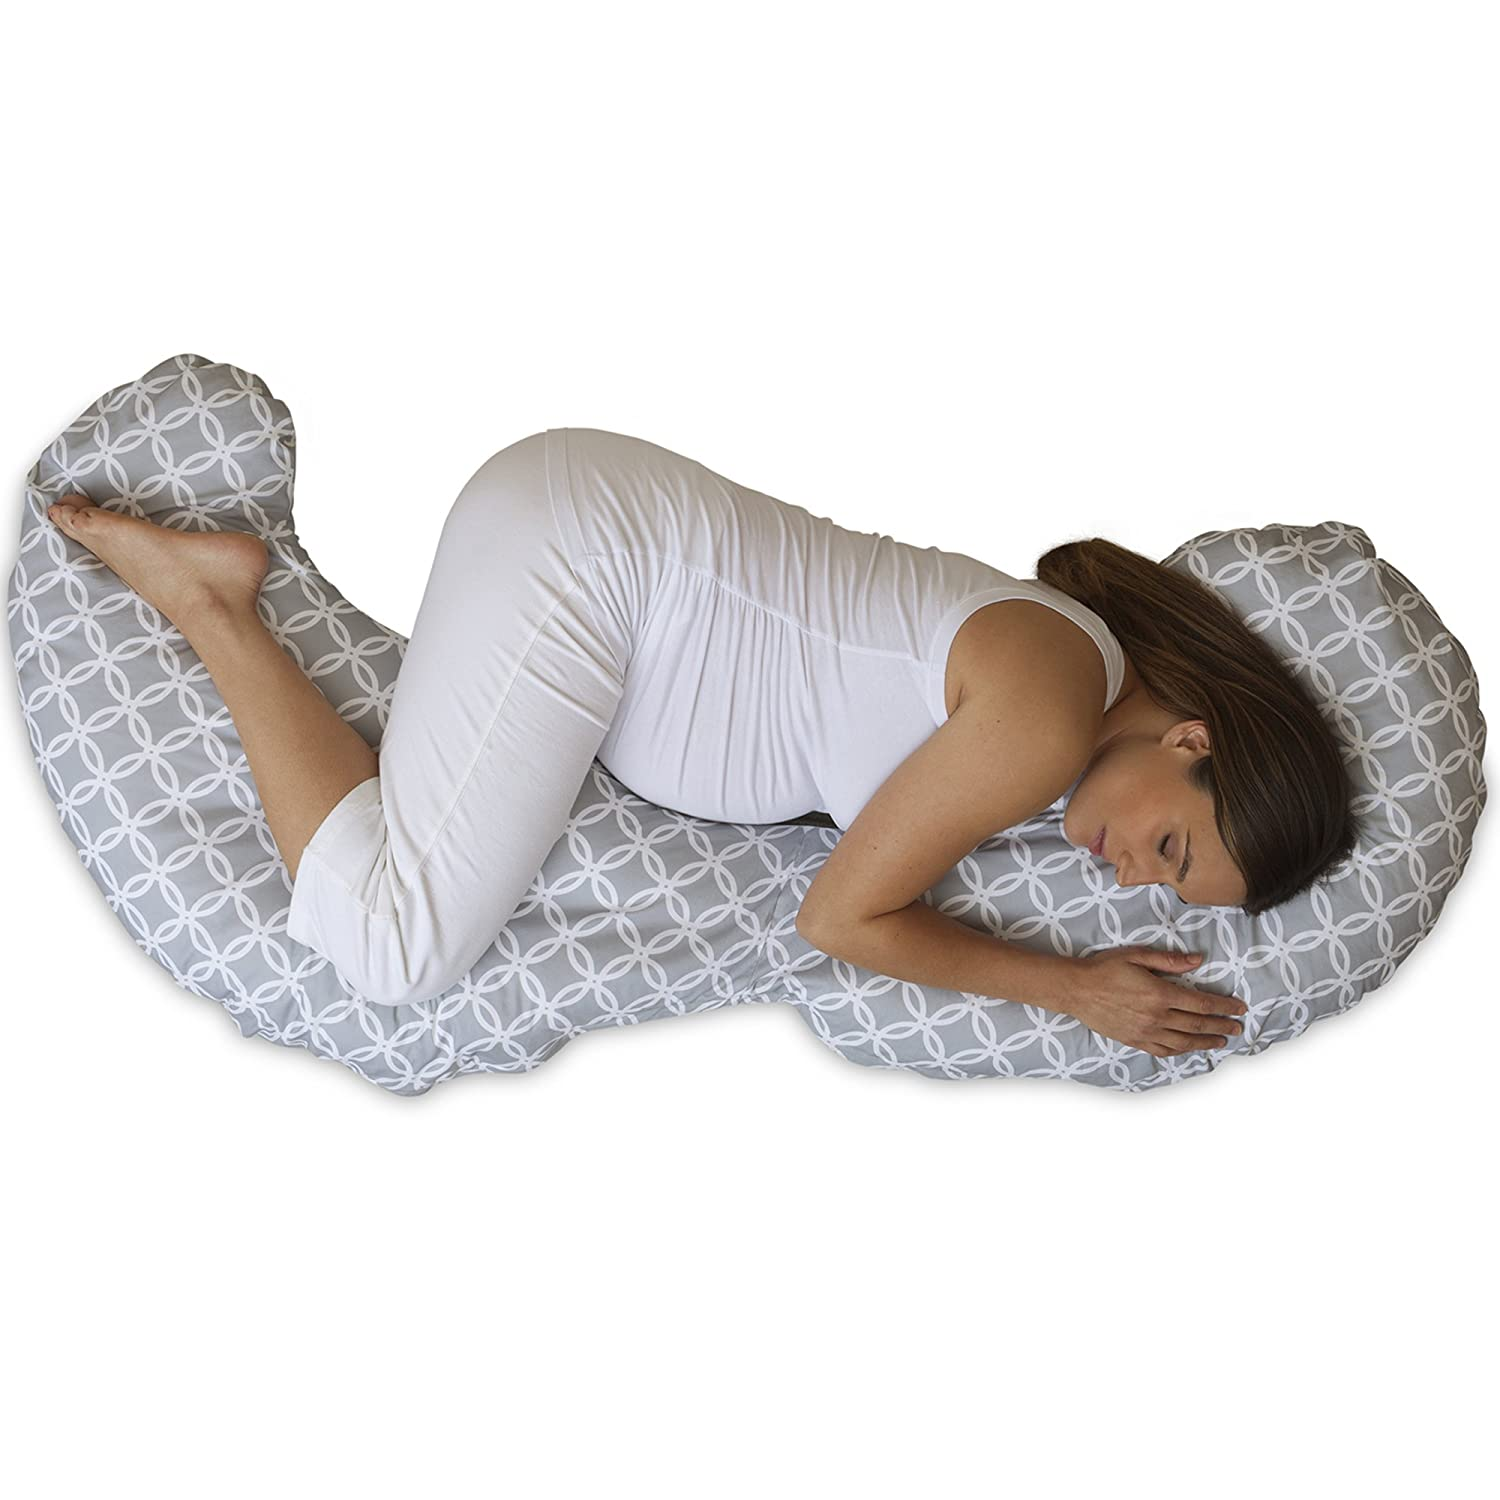 B07PW9PBPW Boppy Slipcovered Total Body Pregnancy Pillow, Gray/White 8131wA2BQWTL